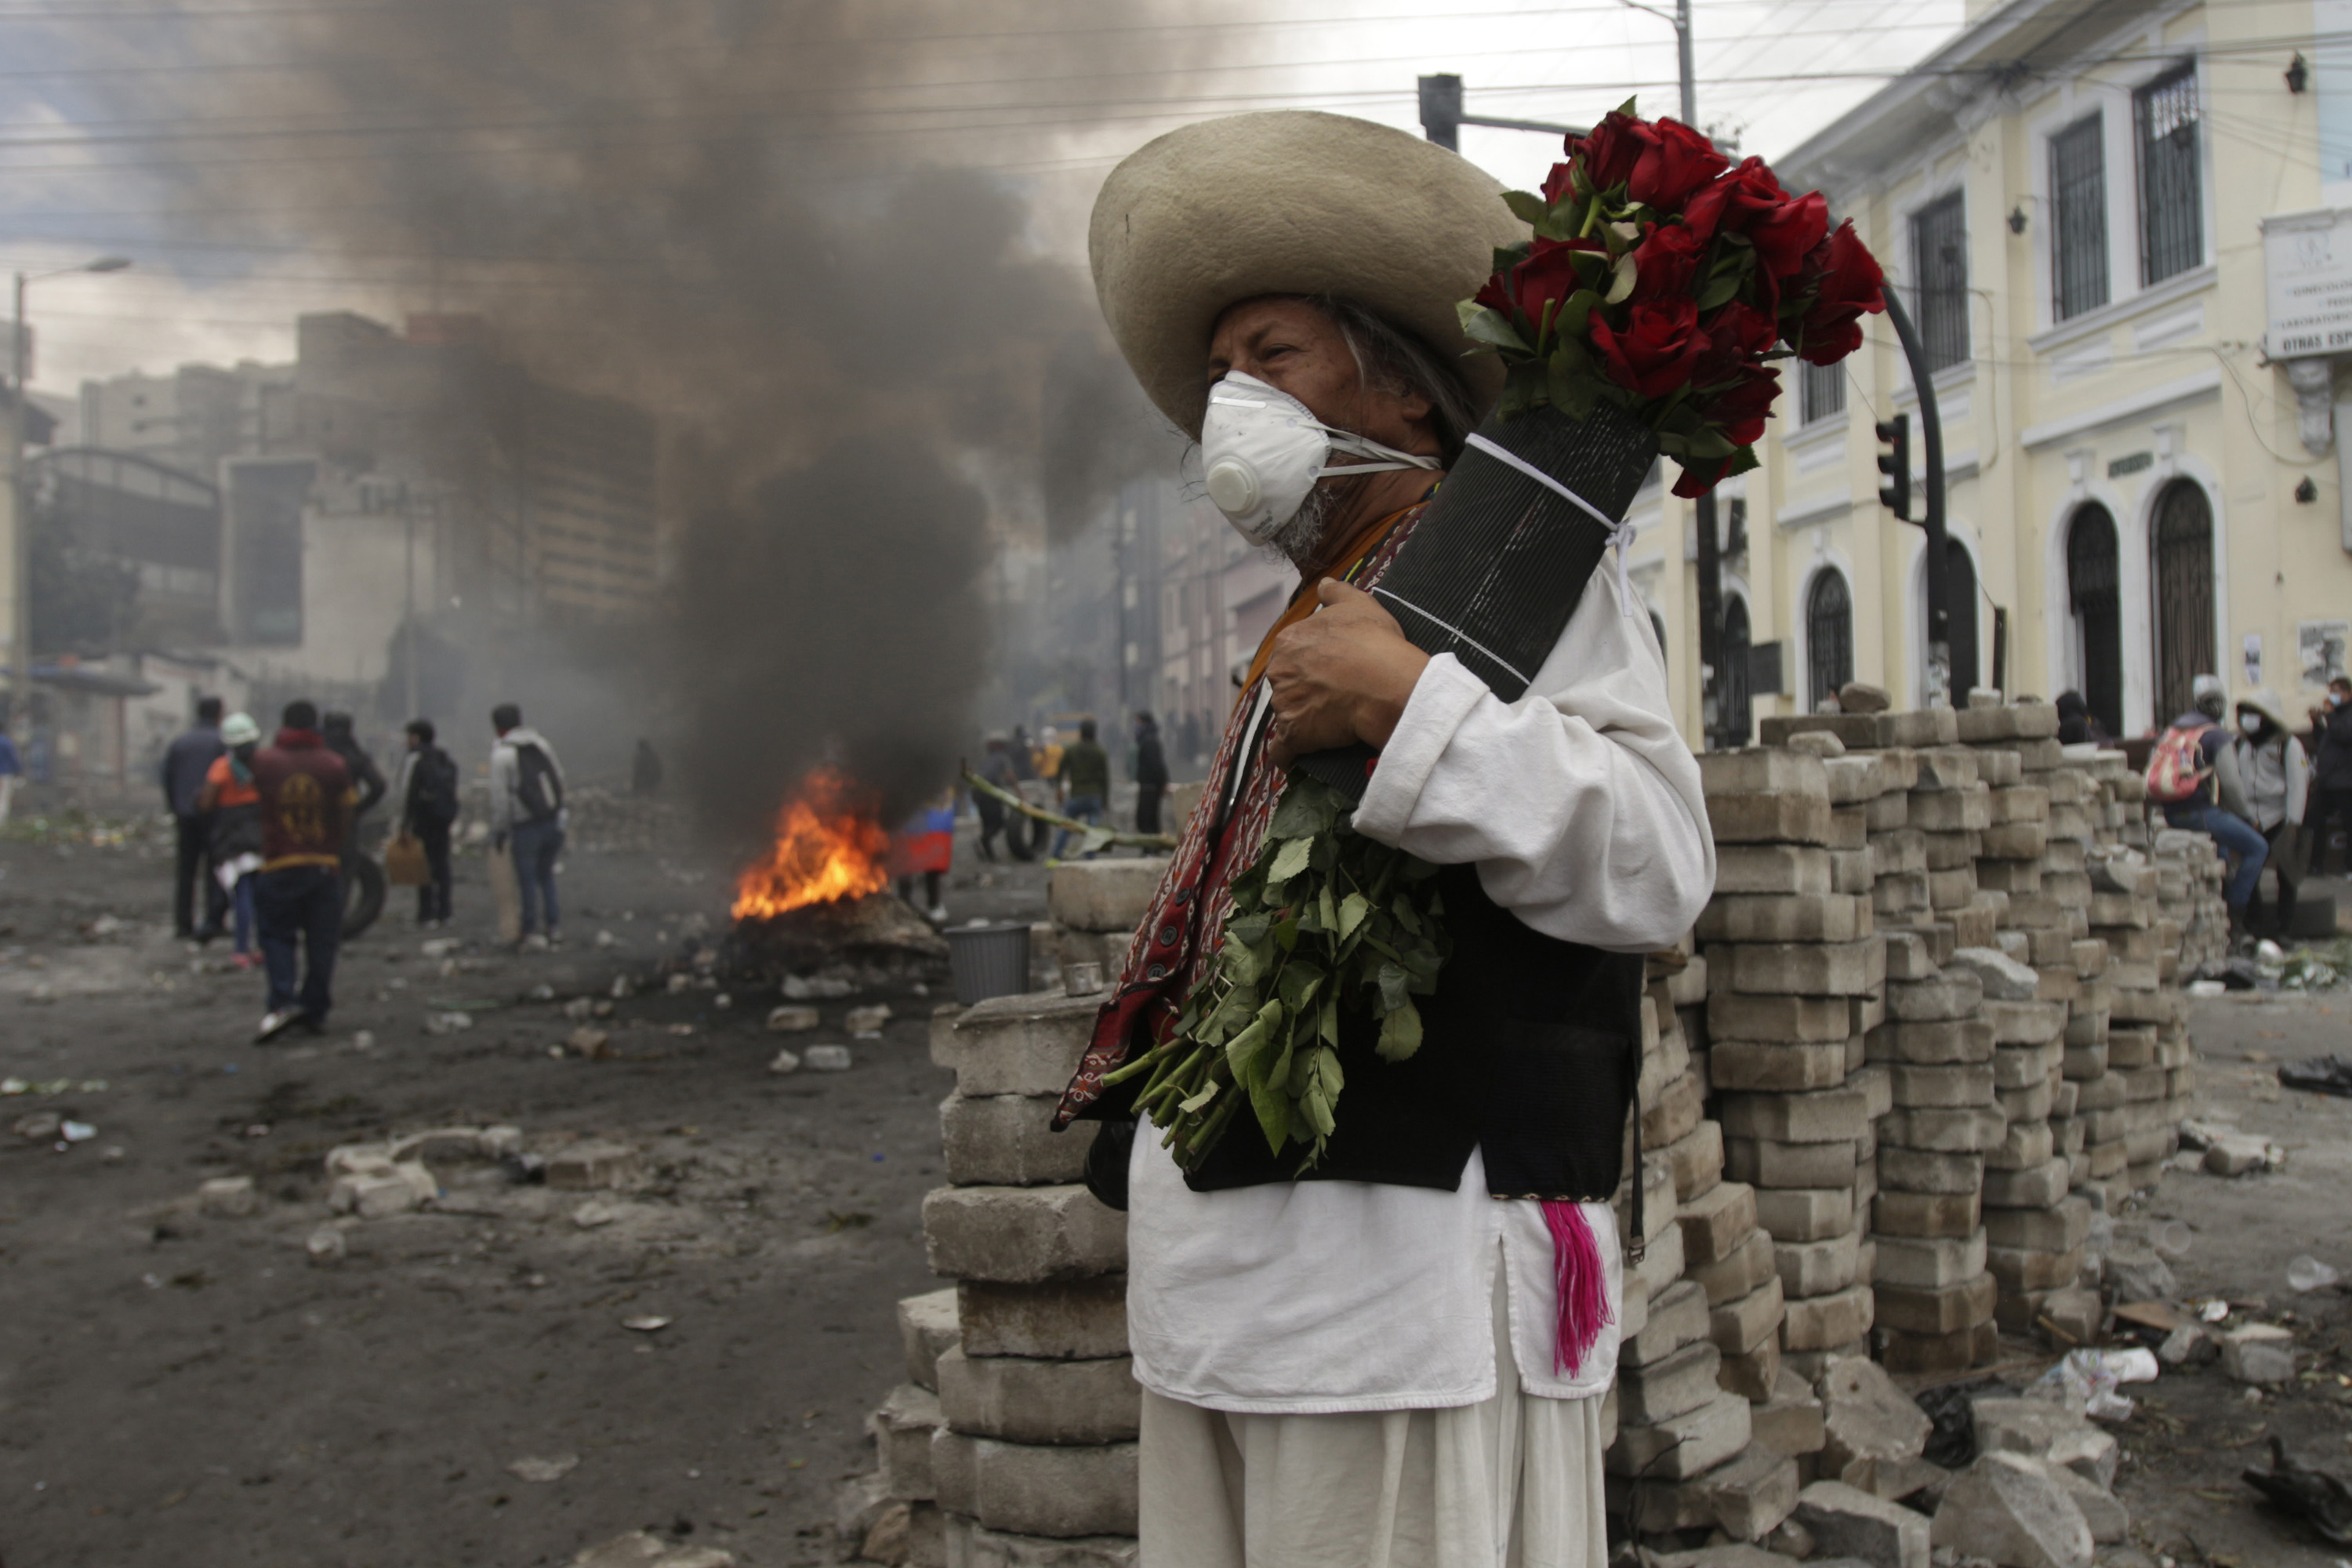 12 October 2019: A demonstrator holds a bouquet of roses in front of a burning barricade during the indigenous protests against the economic measures taken by President Lenín Moreno in Quito, Ecuador. (Photograph by Ricardo Landera/Agencia Press South/Getty Images)